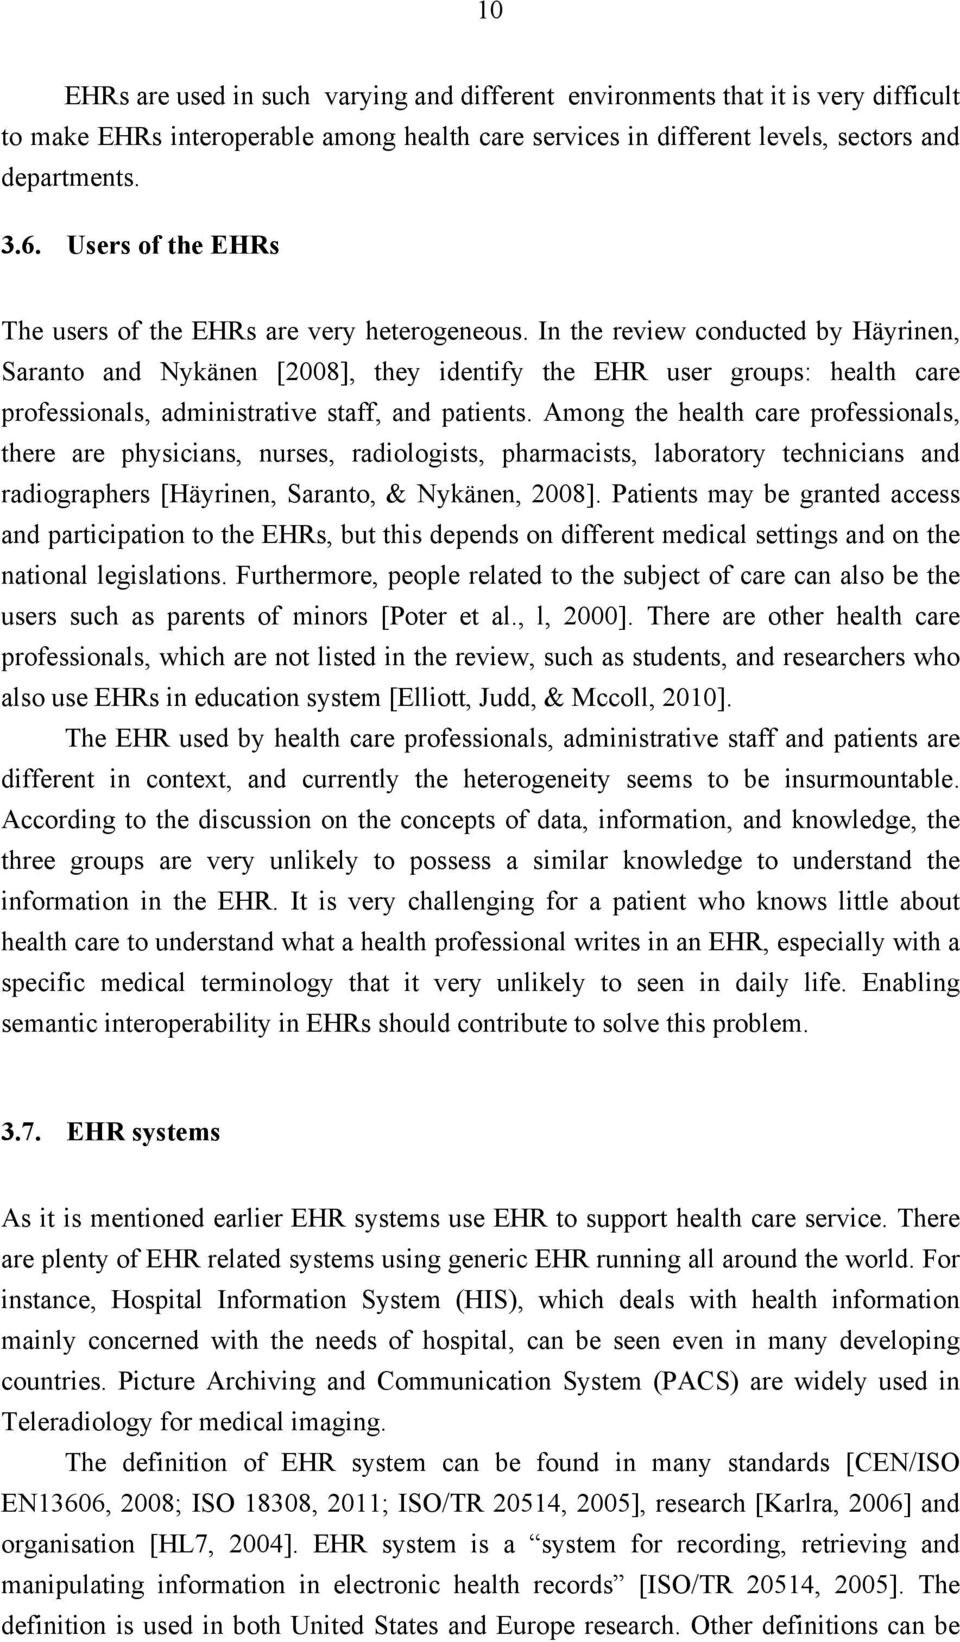 In the review conducted by Häyrinen, Saranto and Nykänen [2008], they identify the EHR user groups: health care professionals, administrative staff, and patients.